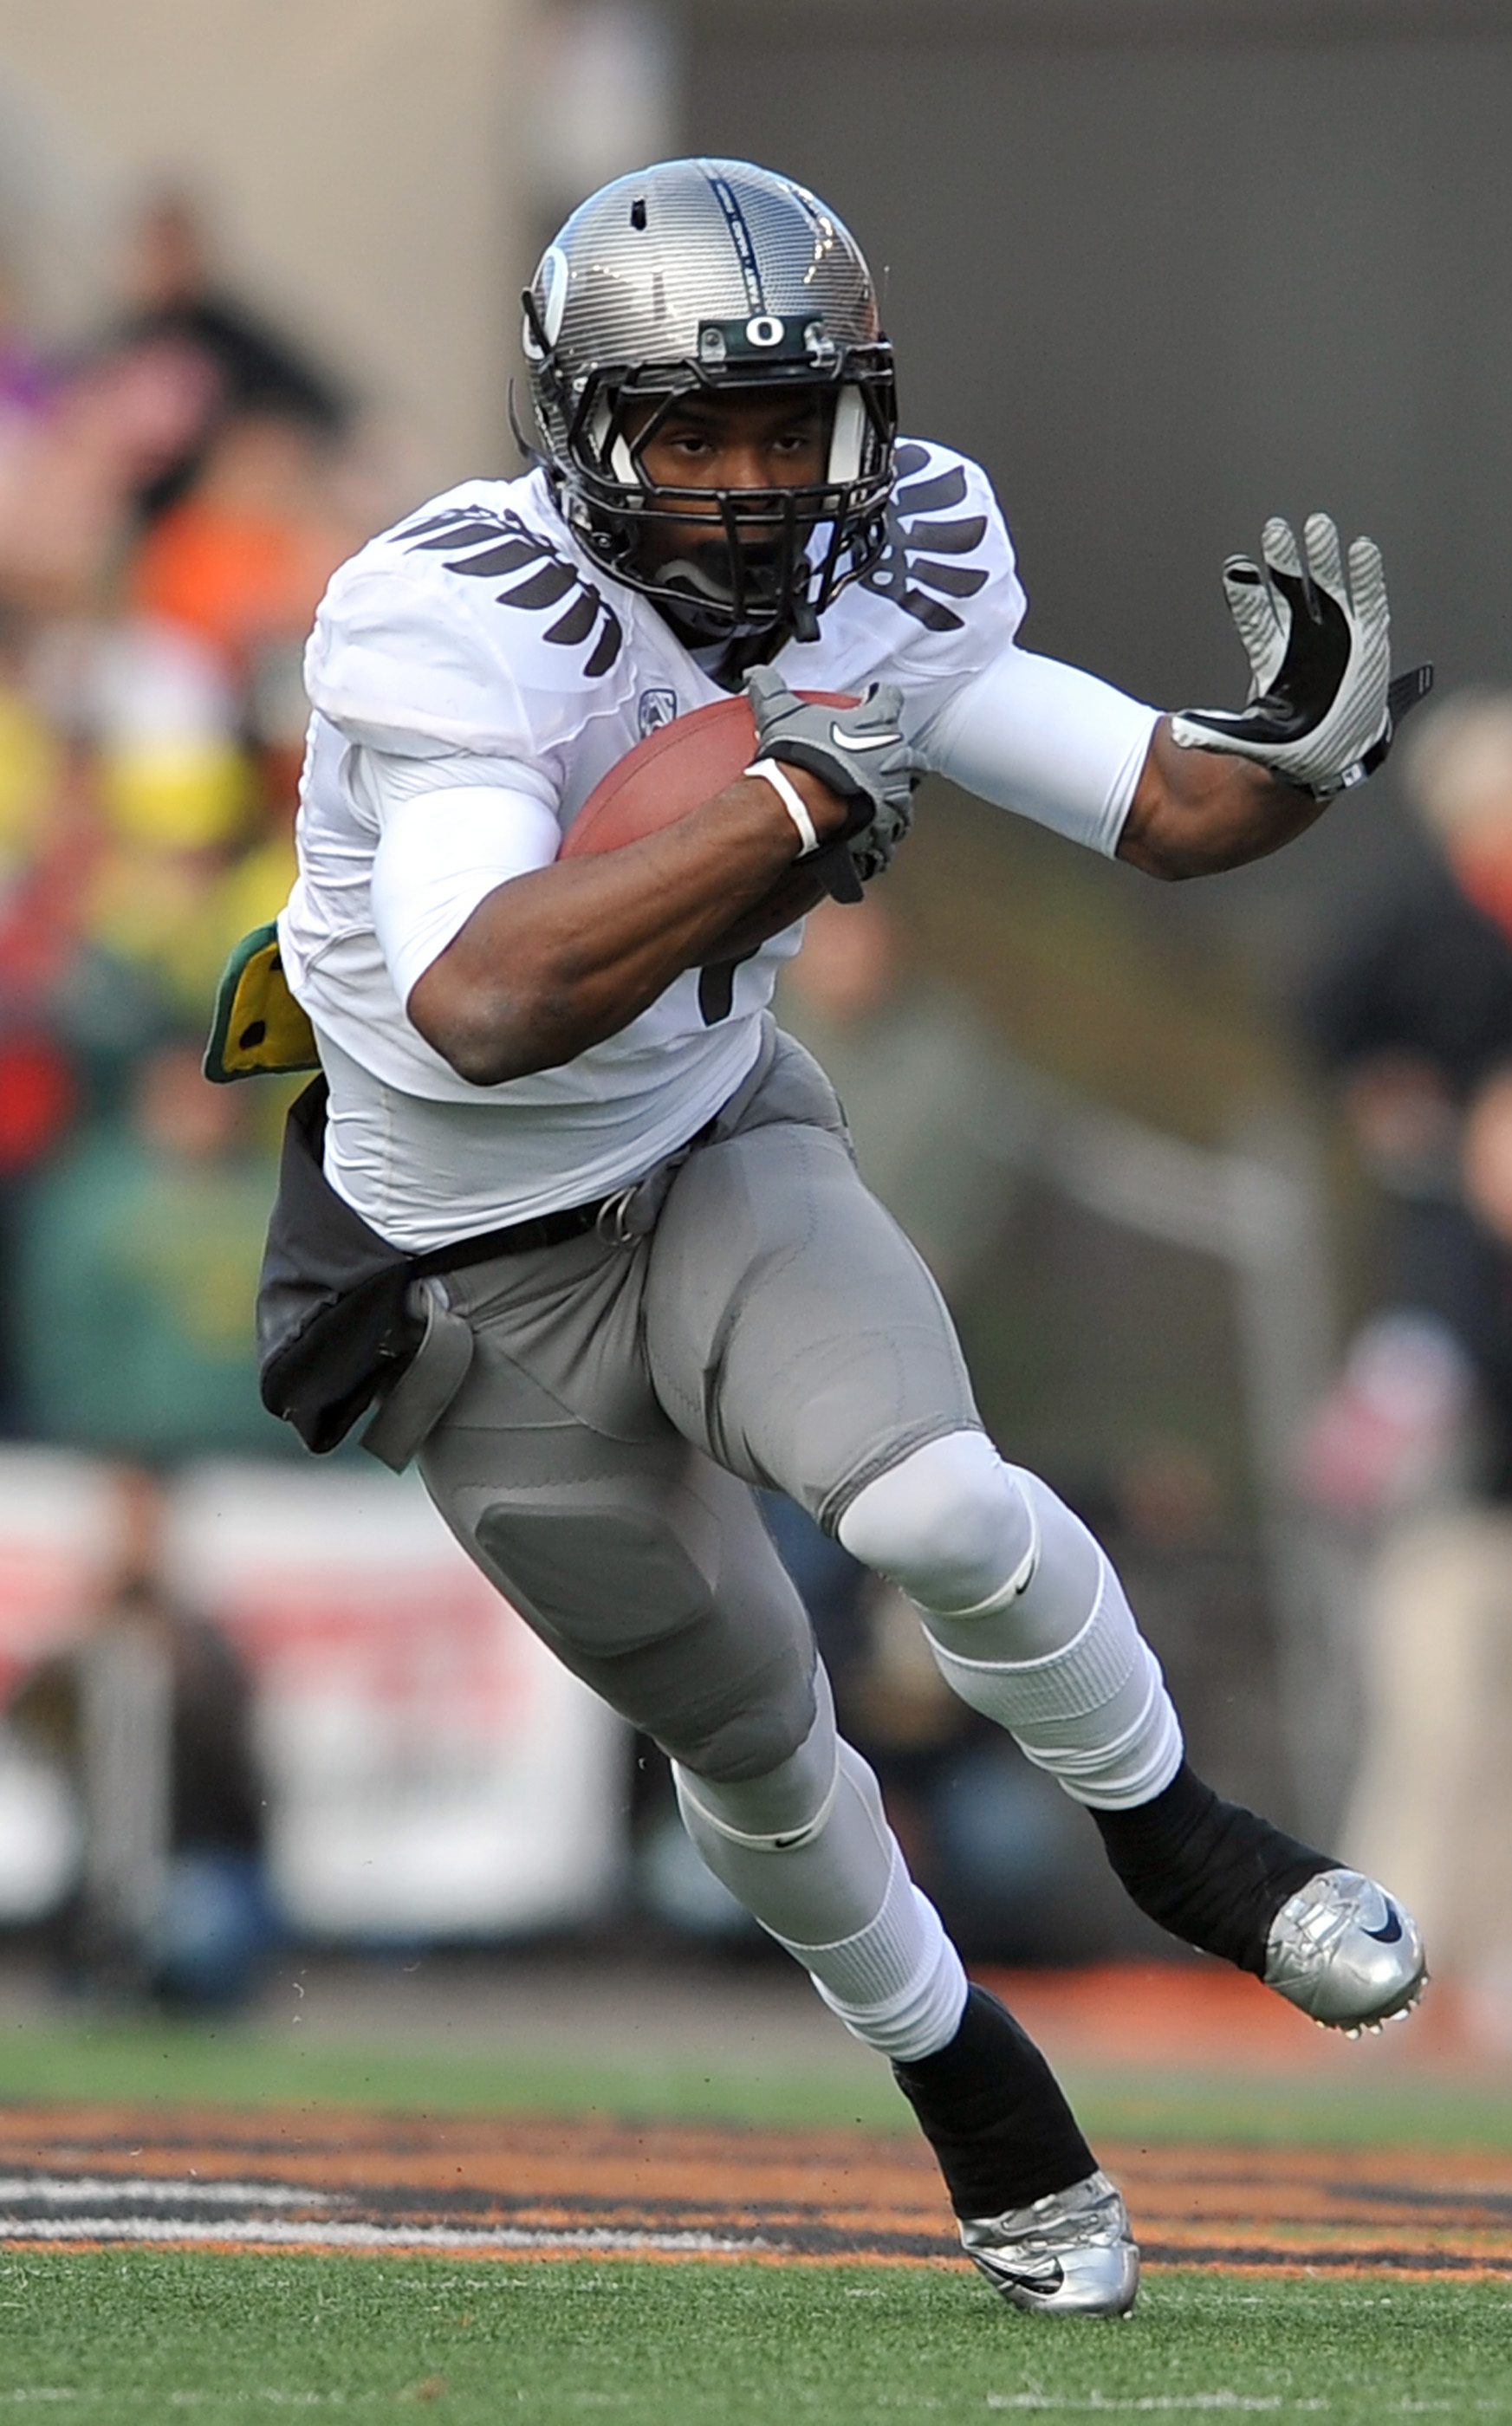 CORVALLIS, OR - DECEMBER 4: Running back Josh Huff #4 of the Oregon Ducks runs with the ball in the second quarter of the game against hte the Oregon State Beavers at Reser Stadium on December 4, 2010 in Corvallis, Oregon. The Ducks beat the Beavers 37-20